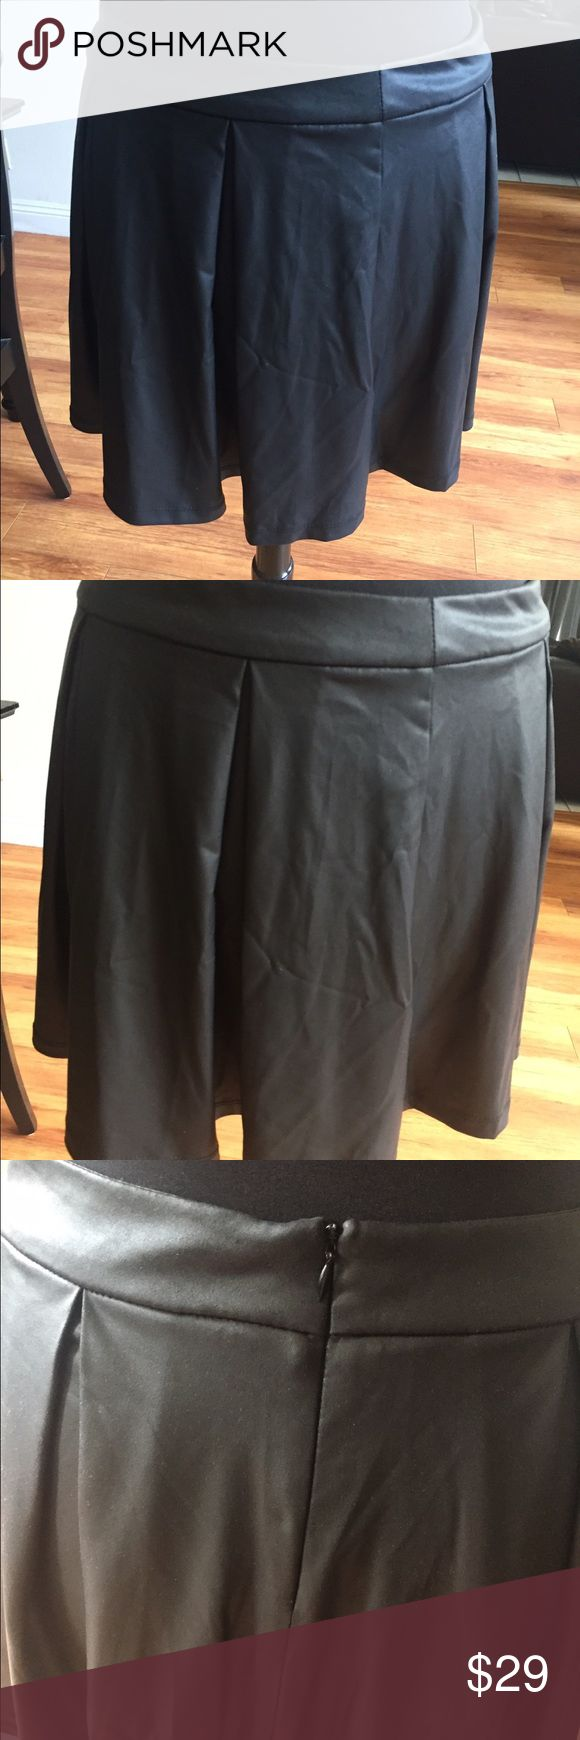 Black Faux Leather Skater Skirt - Soft, flowy💋 Black Faux Leather Skater Skirt - Soft, flowy💋 Good for Fall and Winter. Easy to pack. Wore this in Medoc France on a trip. Pair with sweaters💋 Forever 21 Skirts